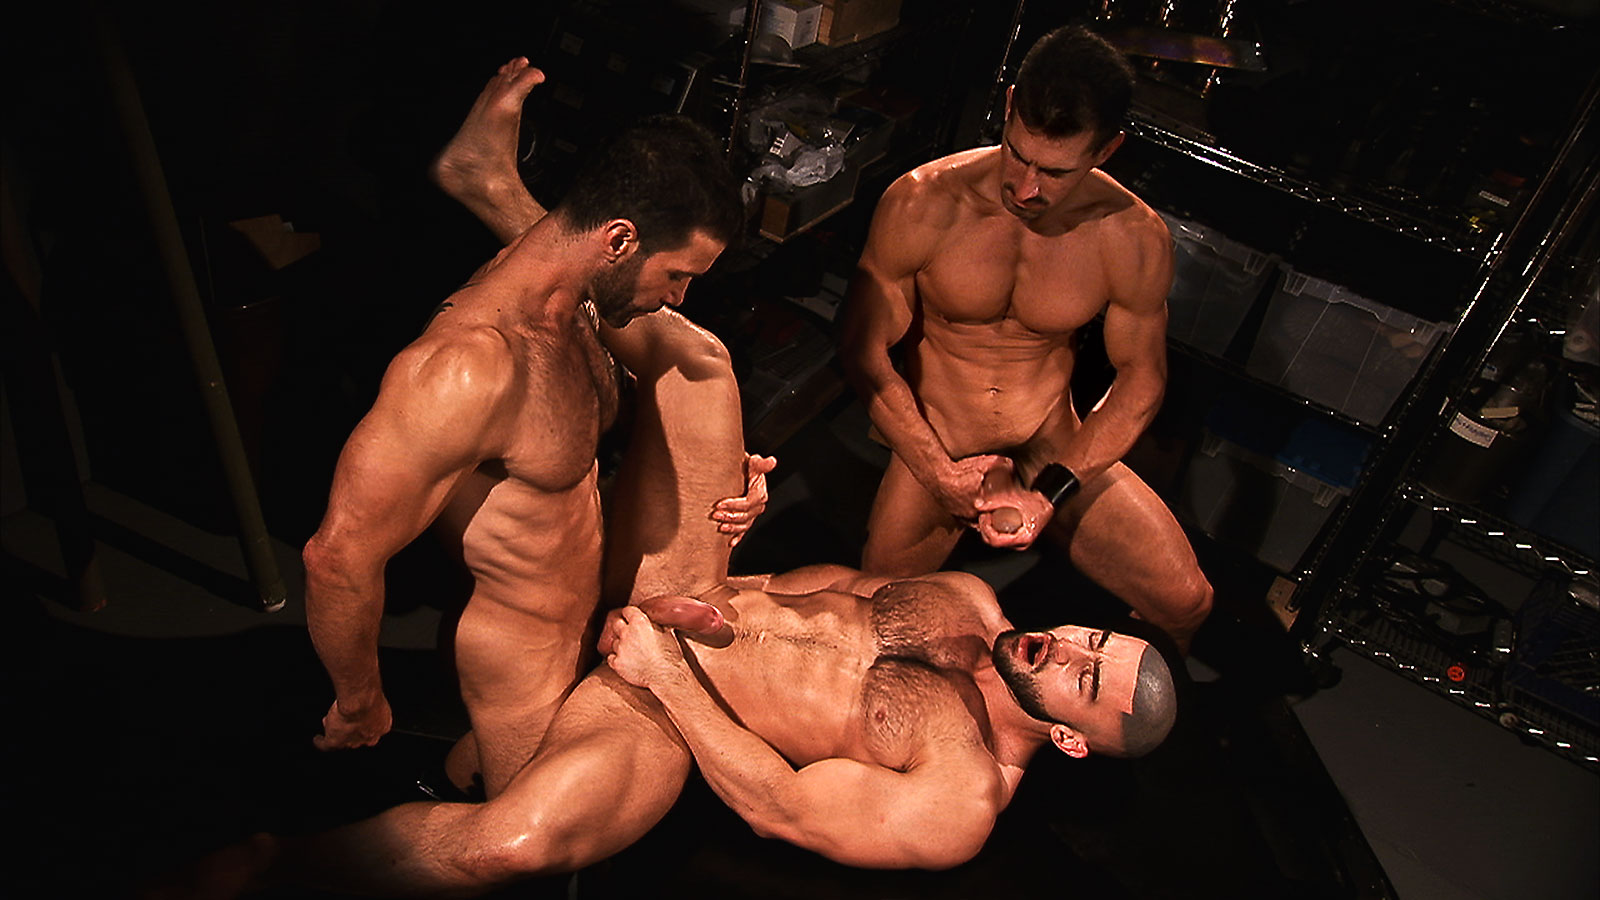 TitanMen Exclusives David Anthony and Francois Sagat with Junior Stellano - Incubus 2: The Final Chapter - Scene 1